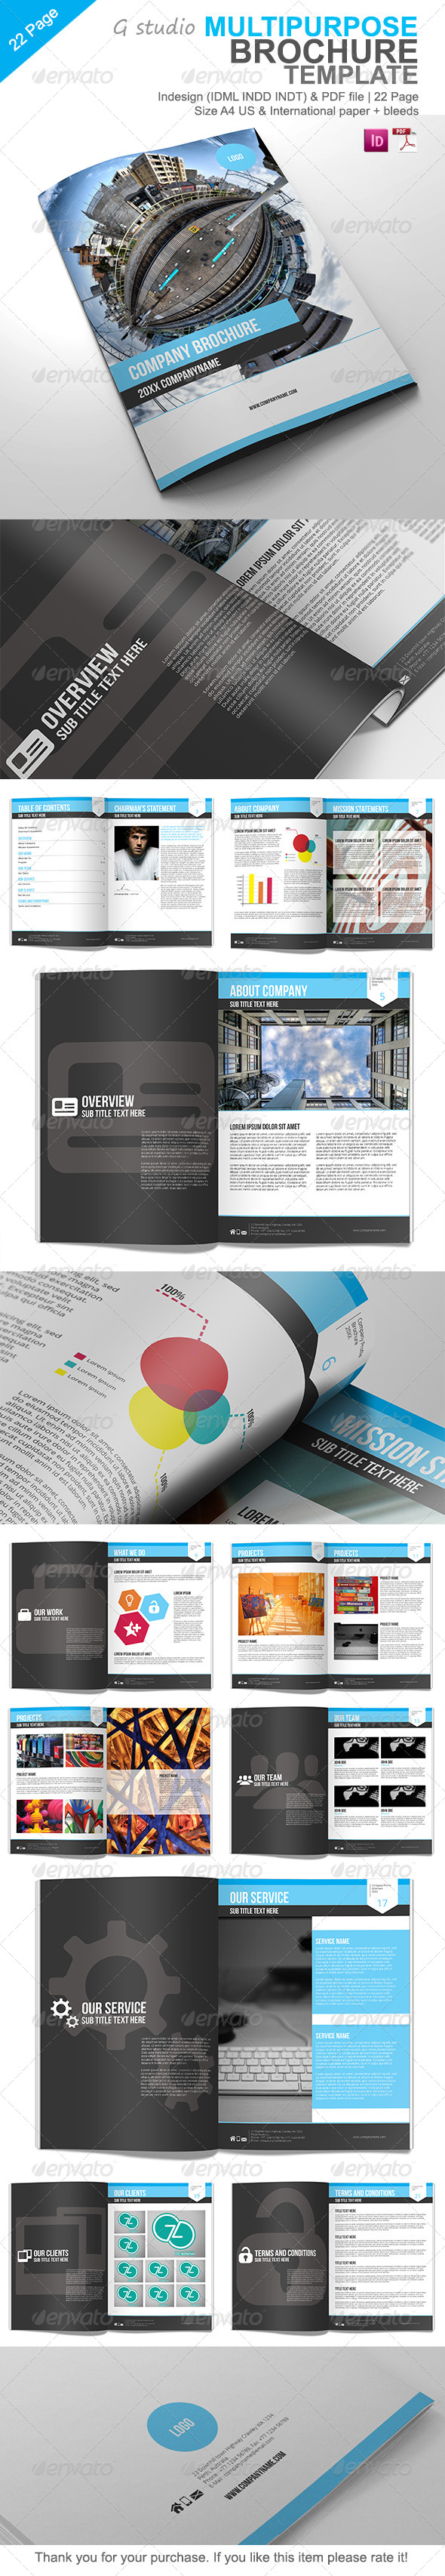 Gstudio Multipurpose Brochure Template - Corporate Brochures